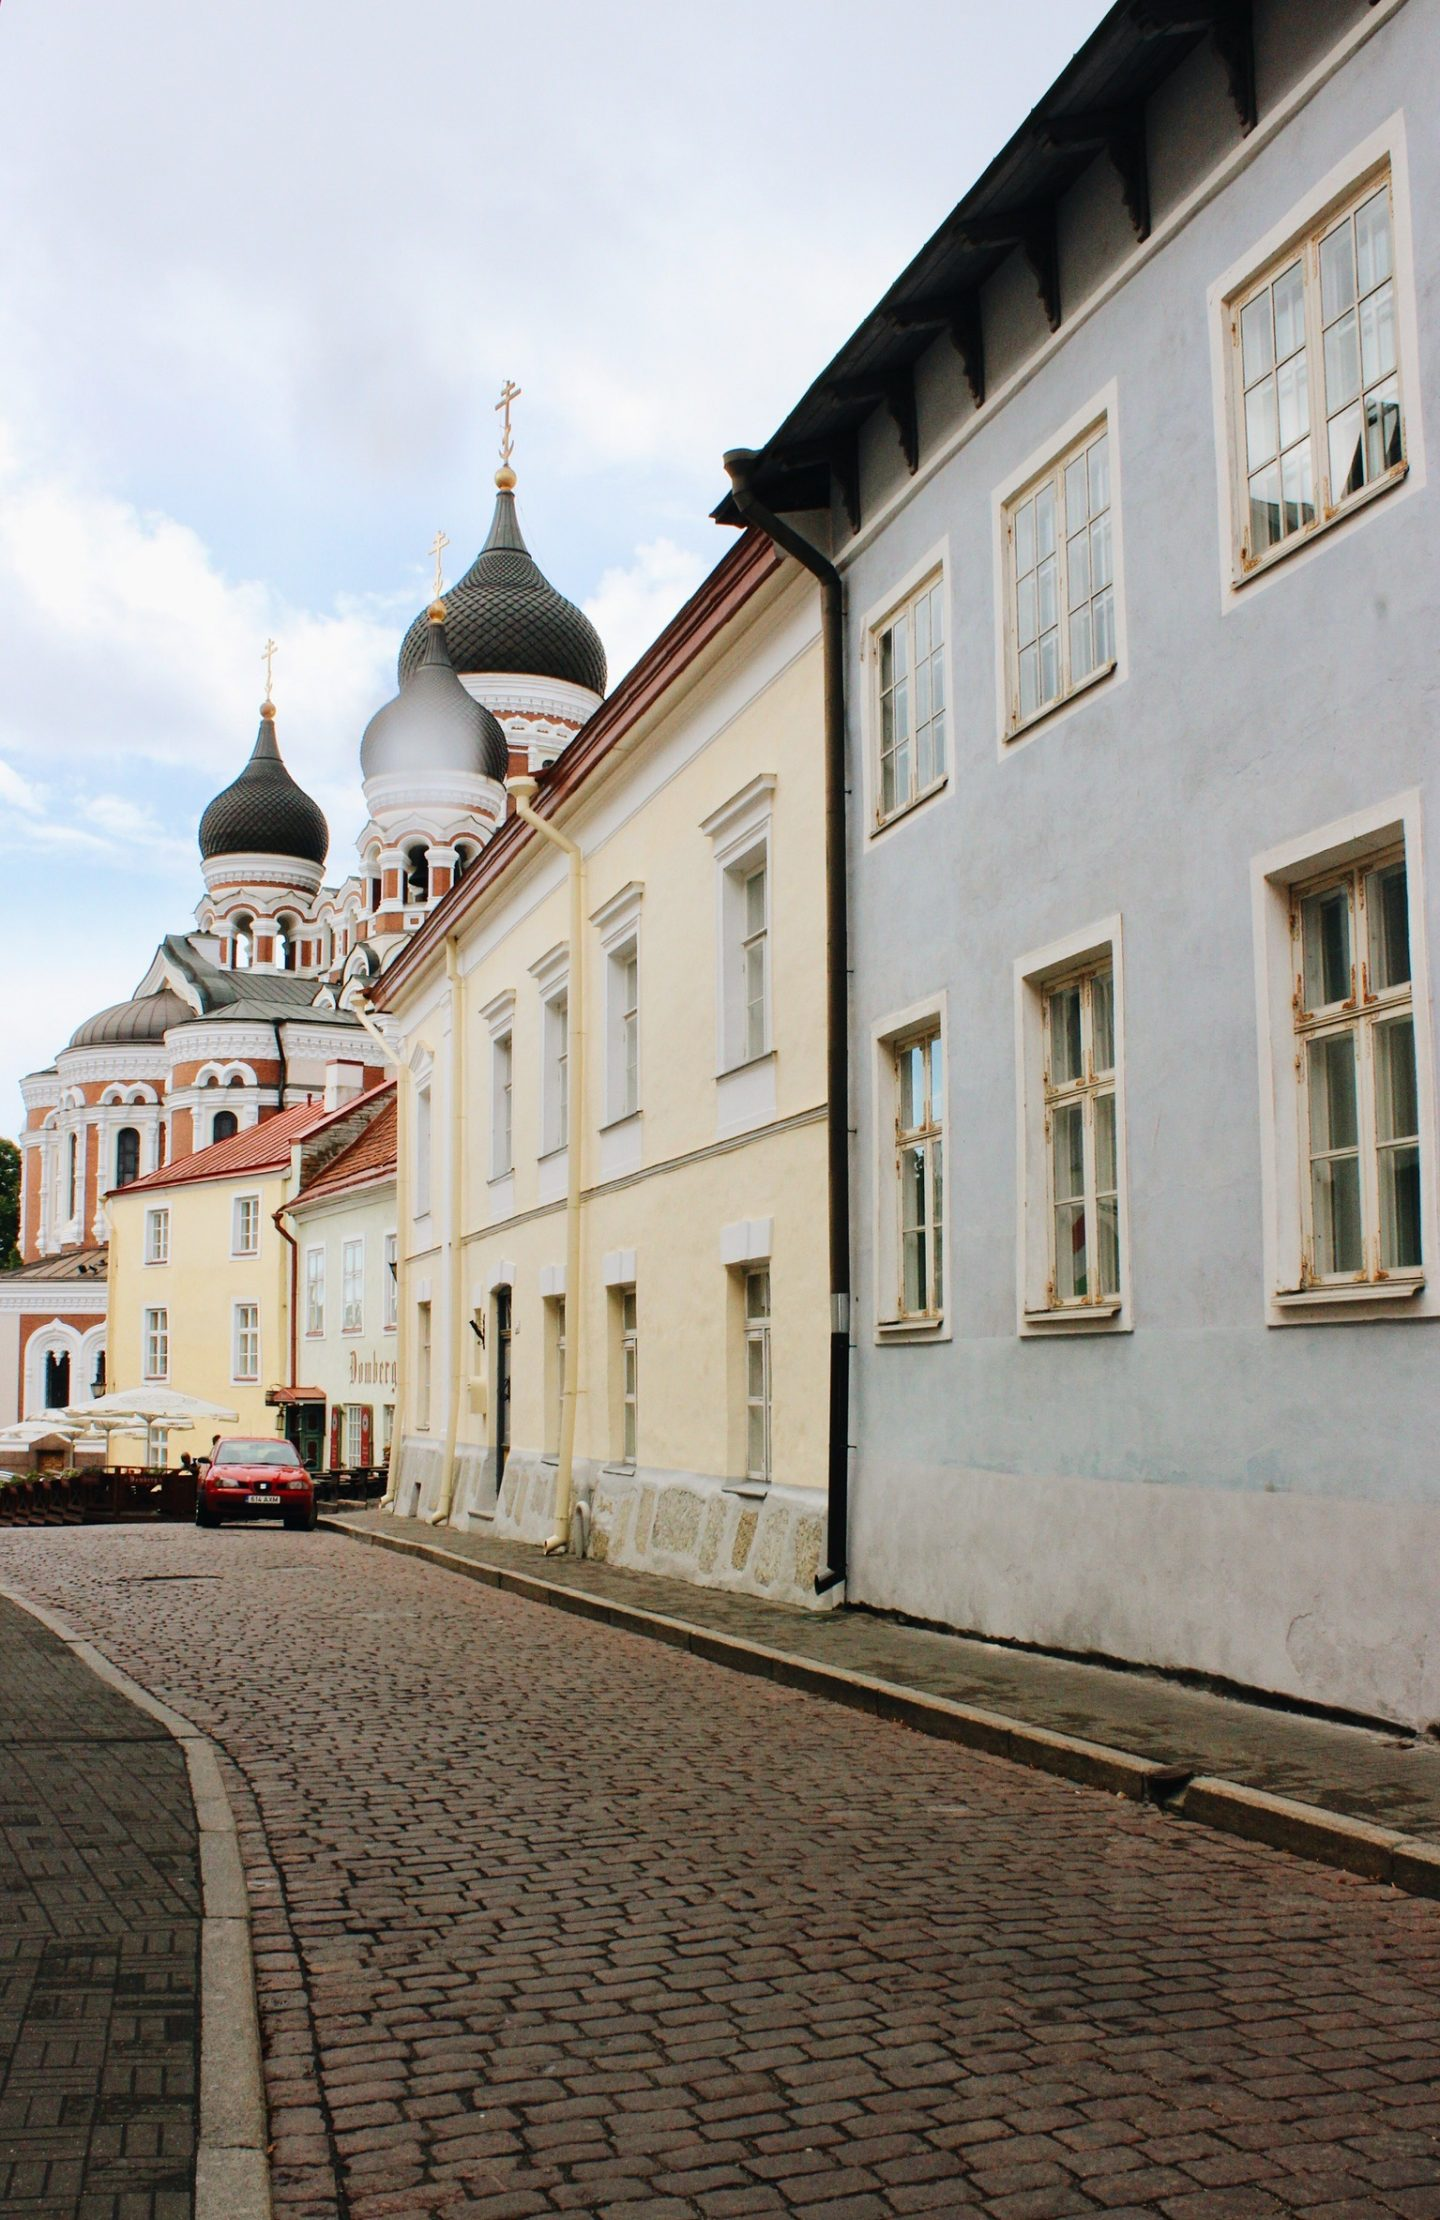 Charming streets of the Old Town in Tallinn, Estonia.